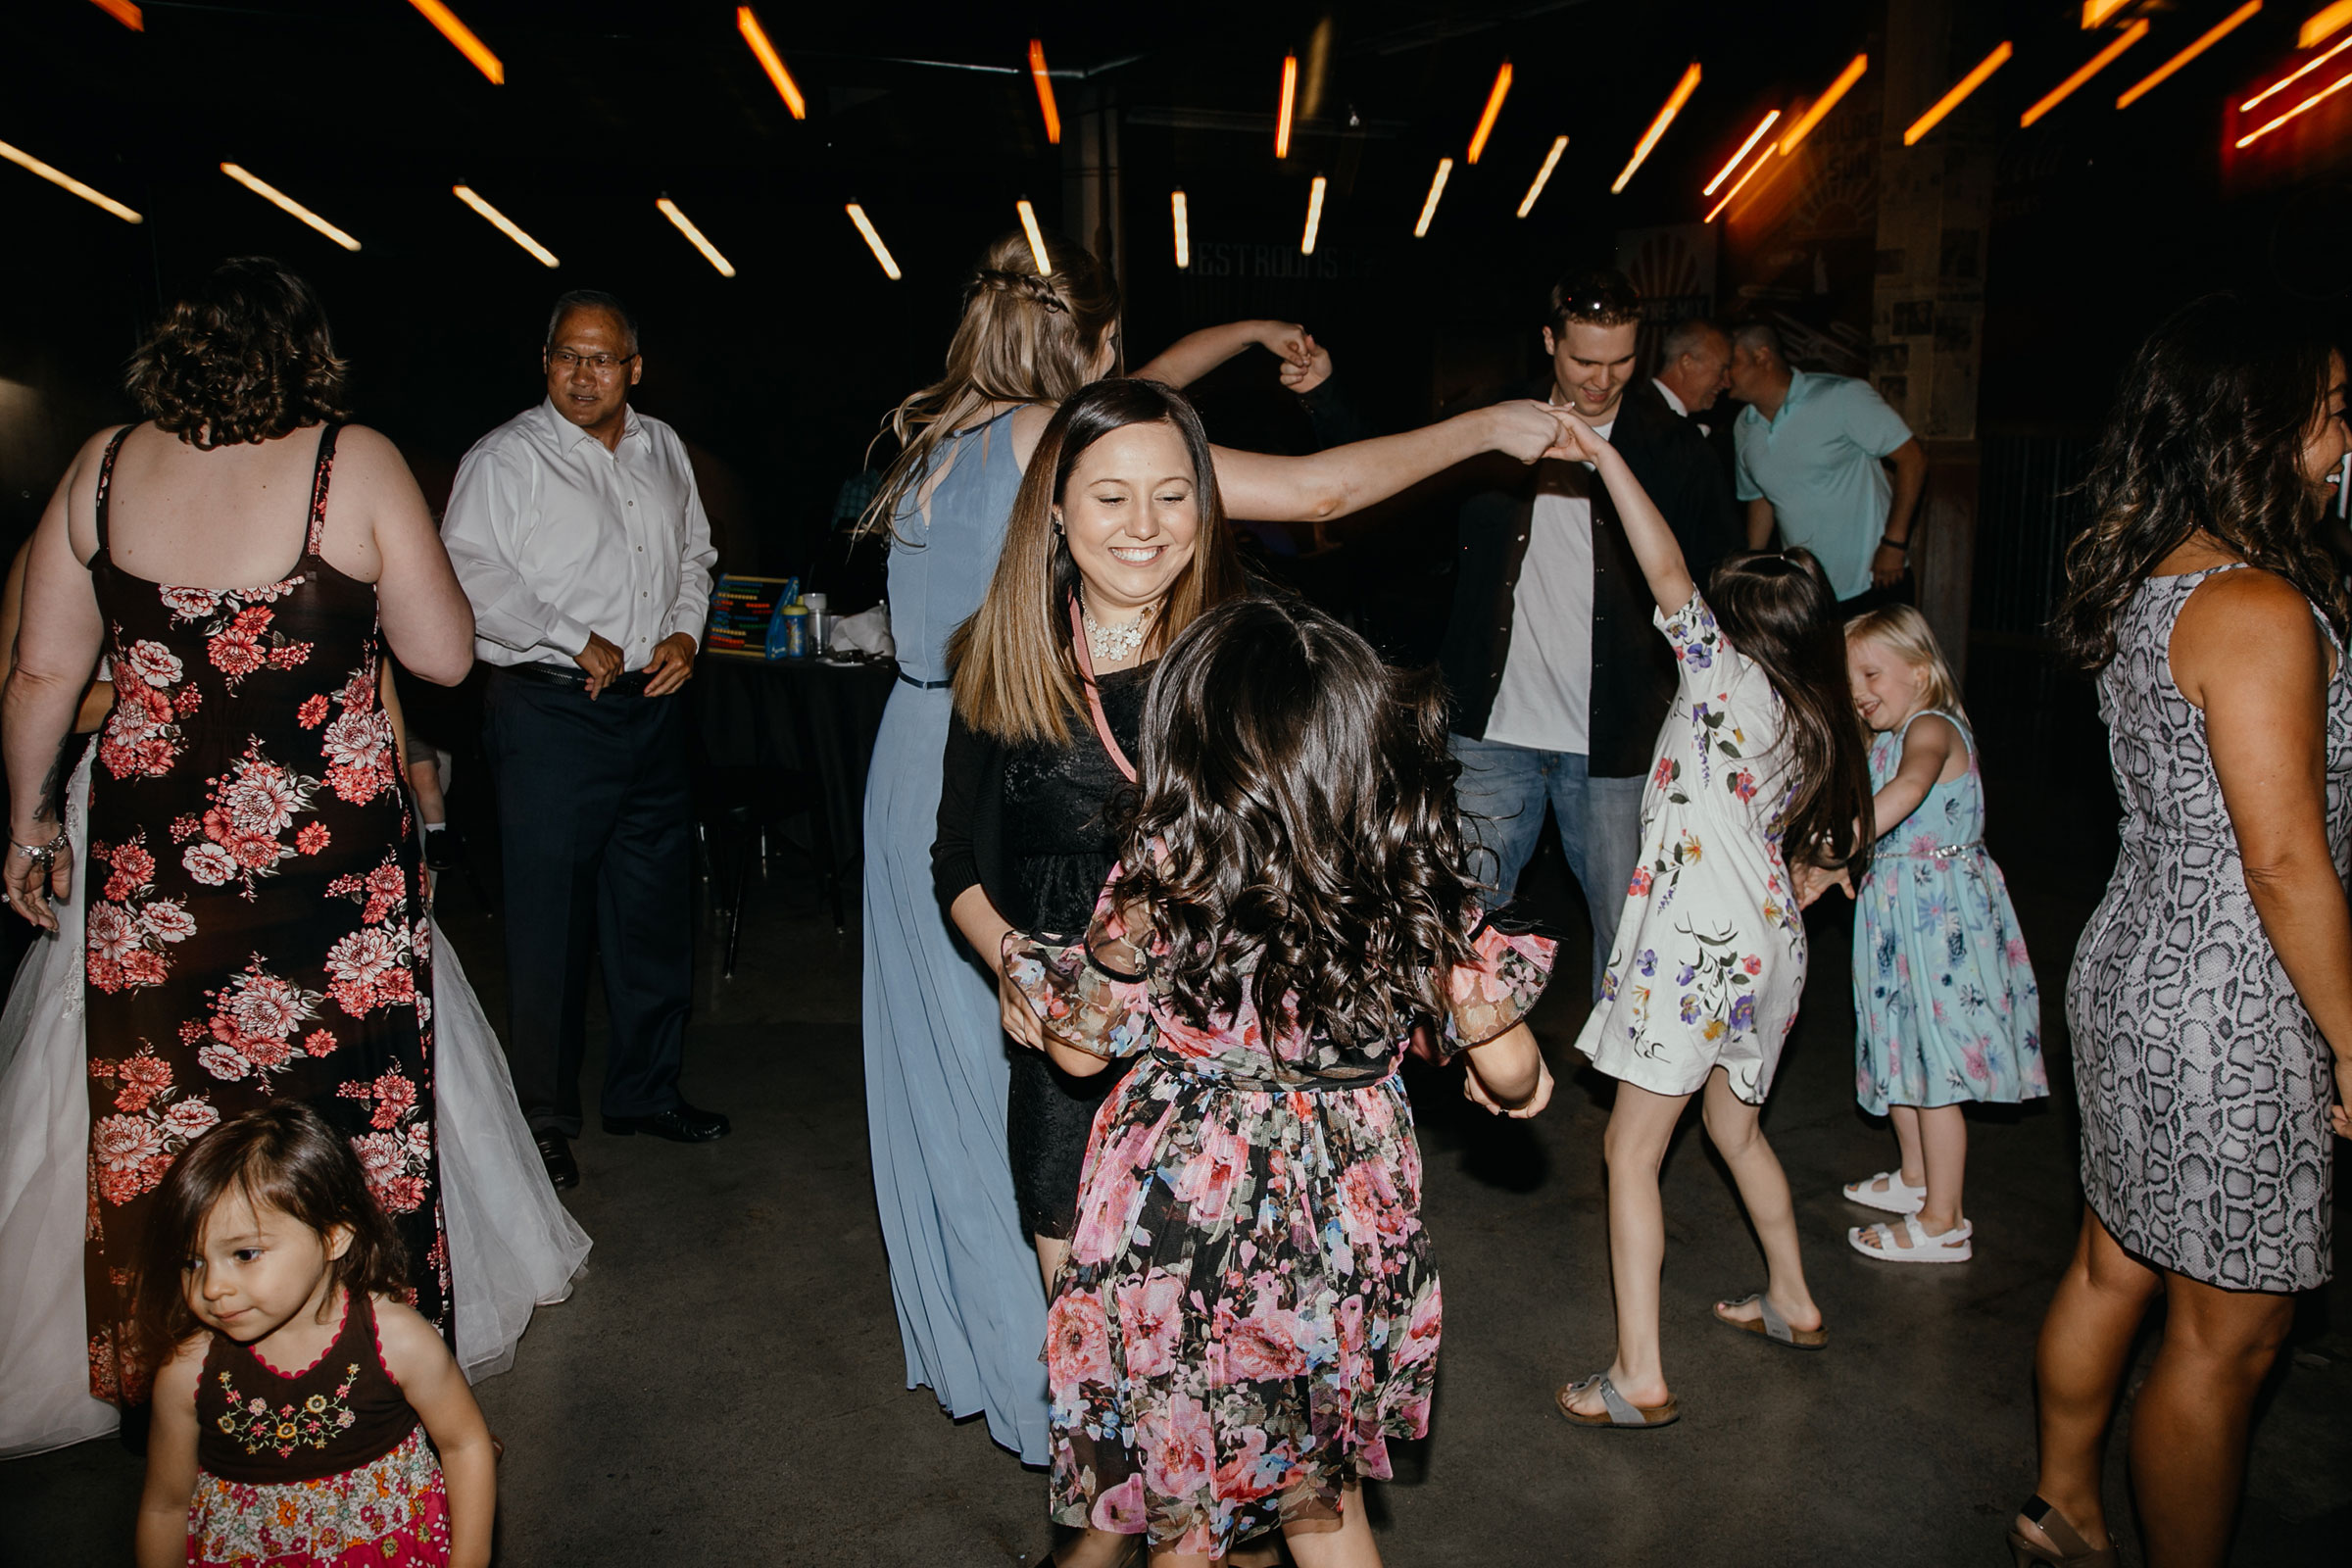 reception-dancing-decades-event-center-building-desmoines-iowa-raelyn-ramey-photography..jpg